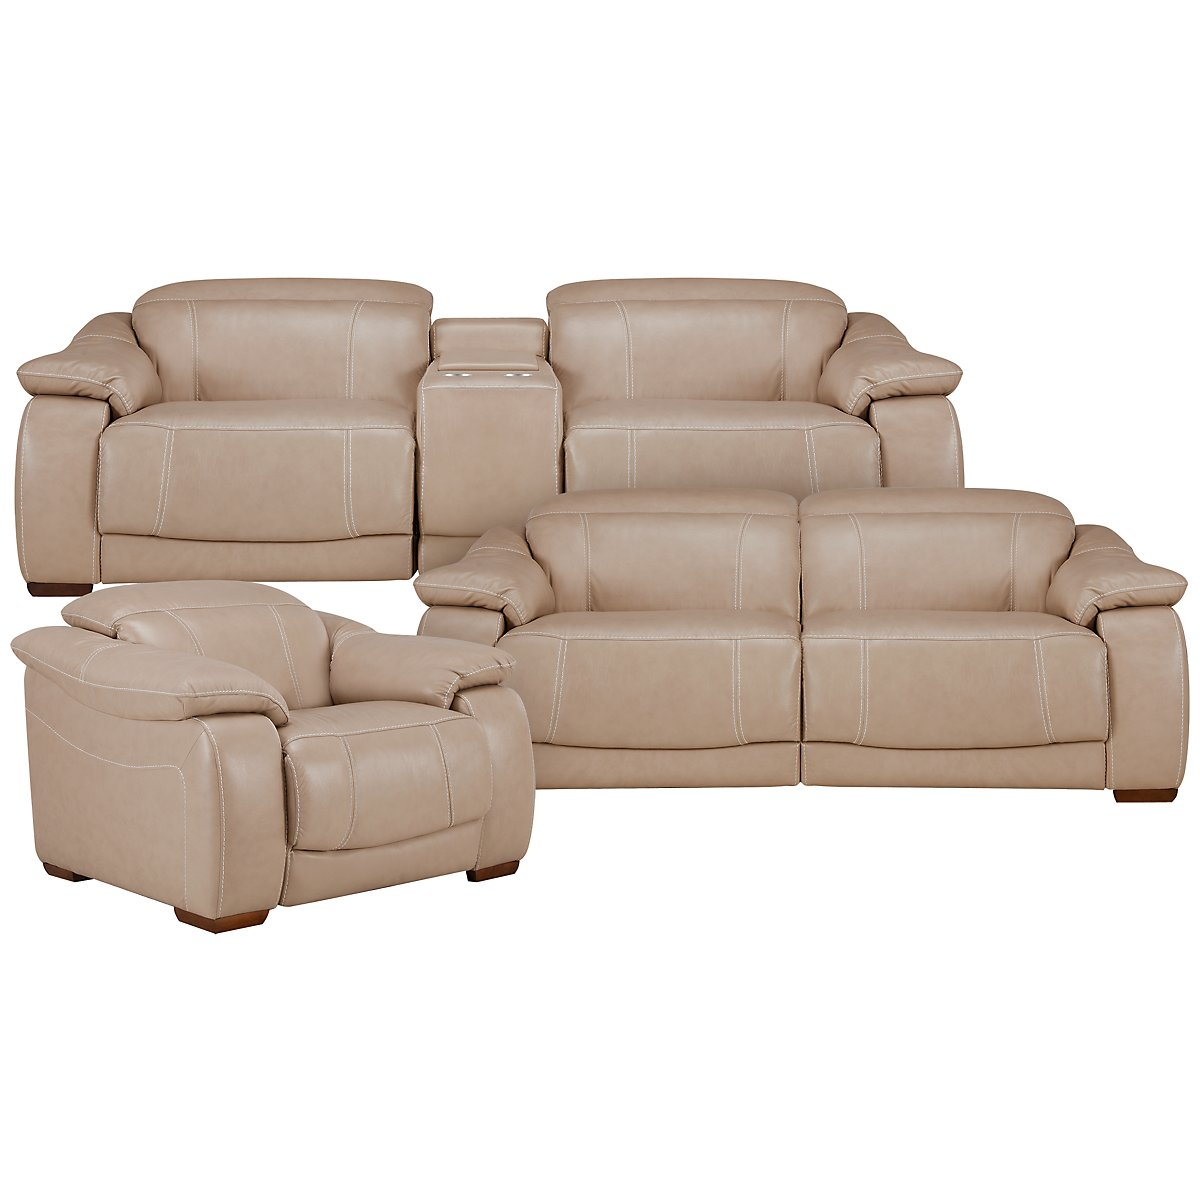 Orion Light Taupe Leather & Bonded Leather Manually Reclining Living Room